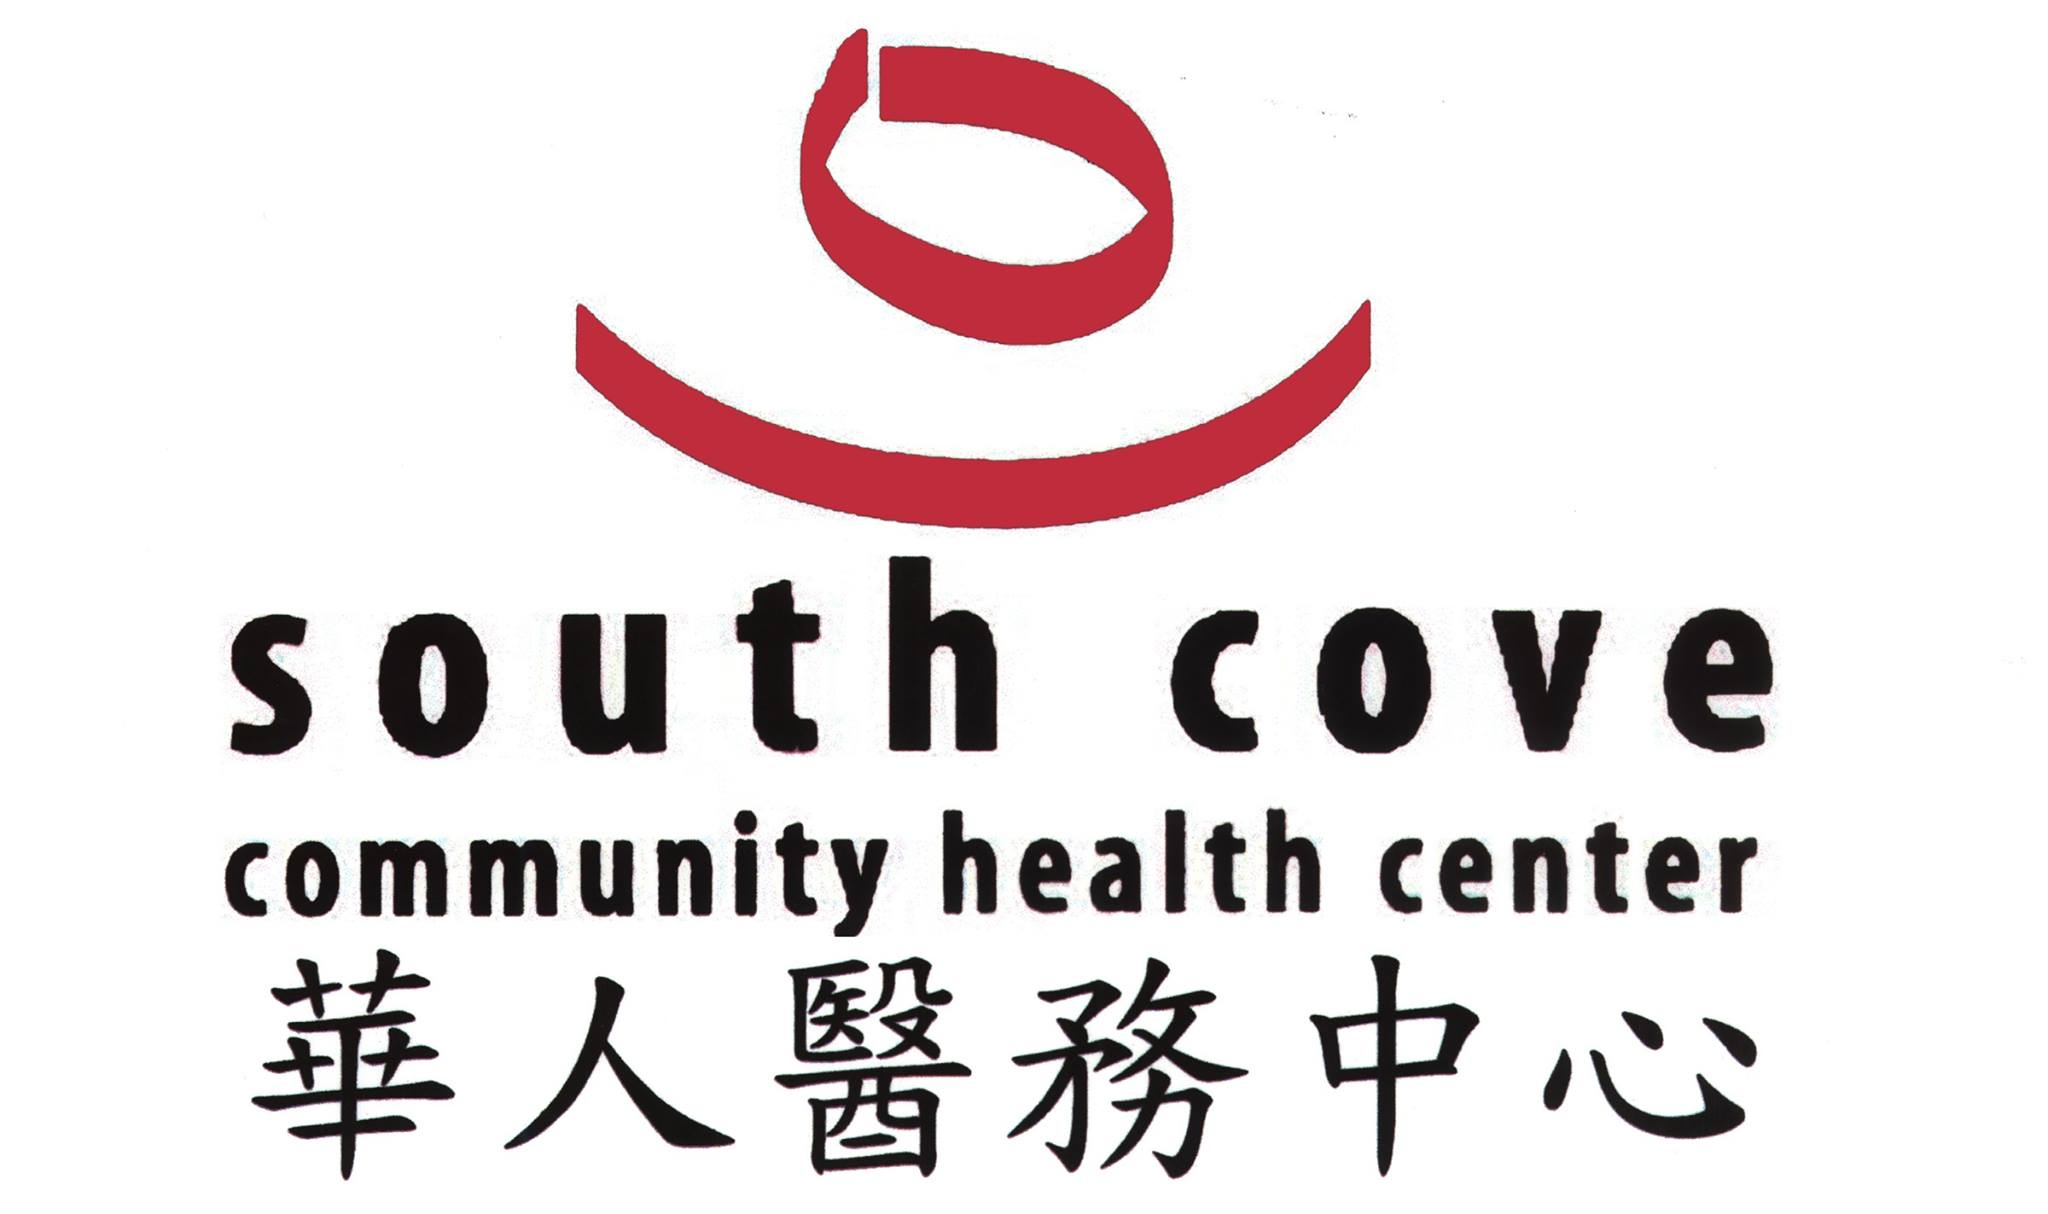 South Cove Community Health Center